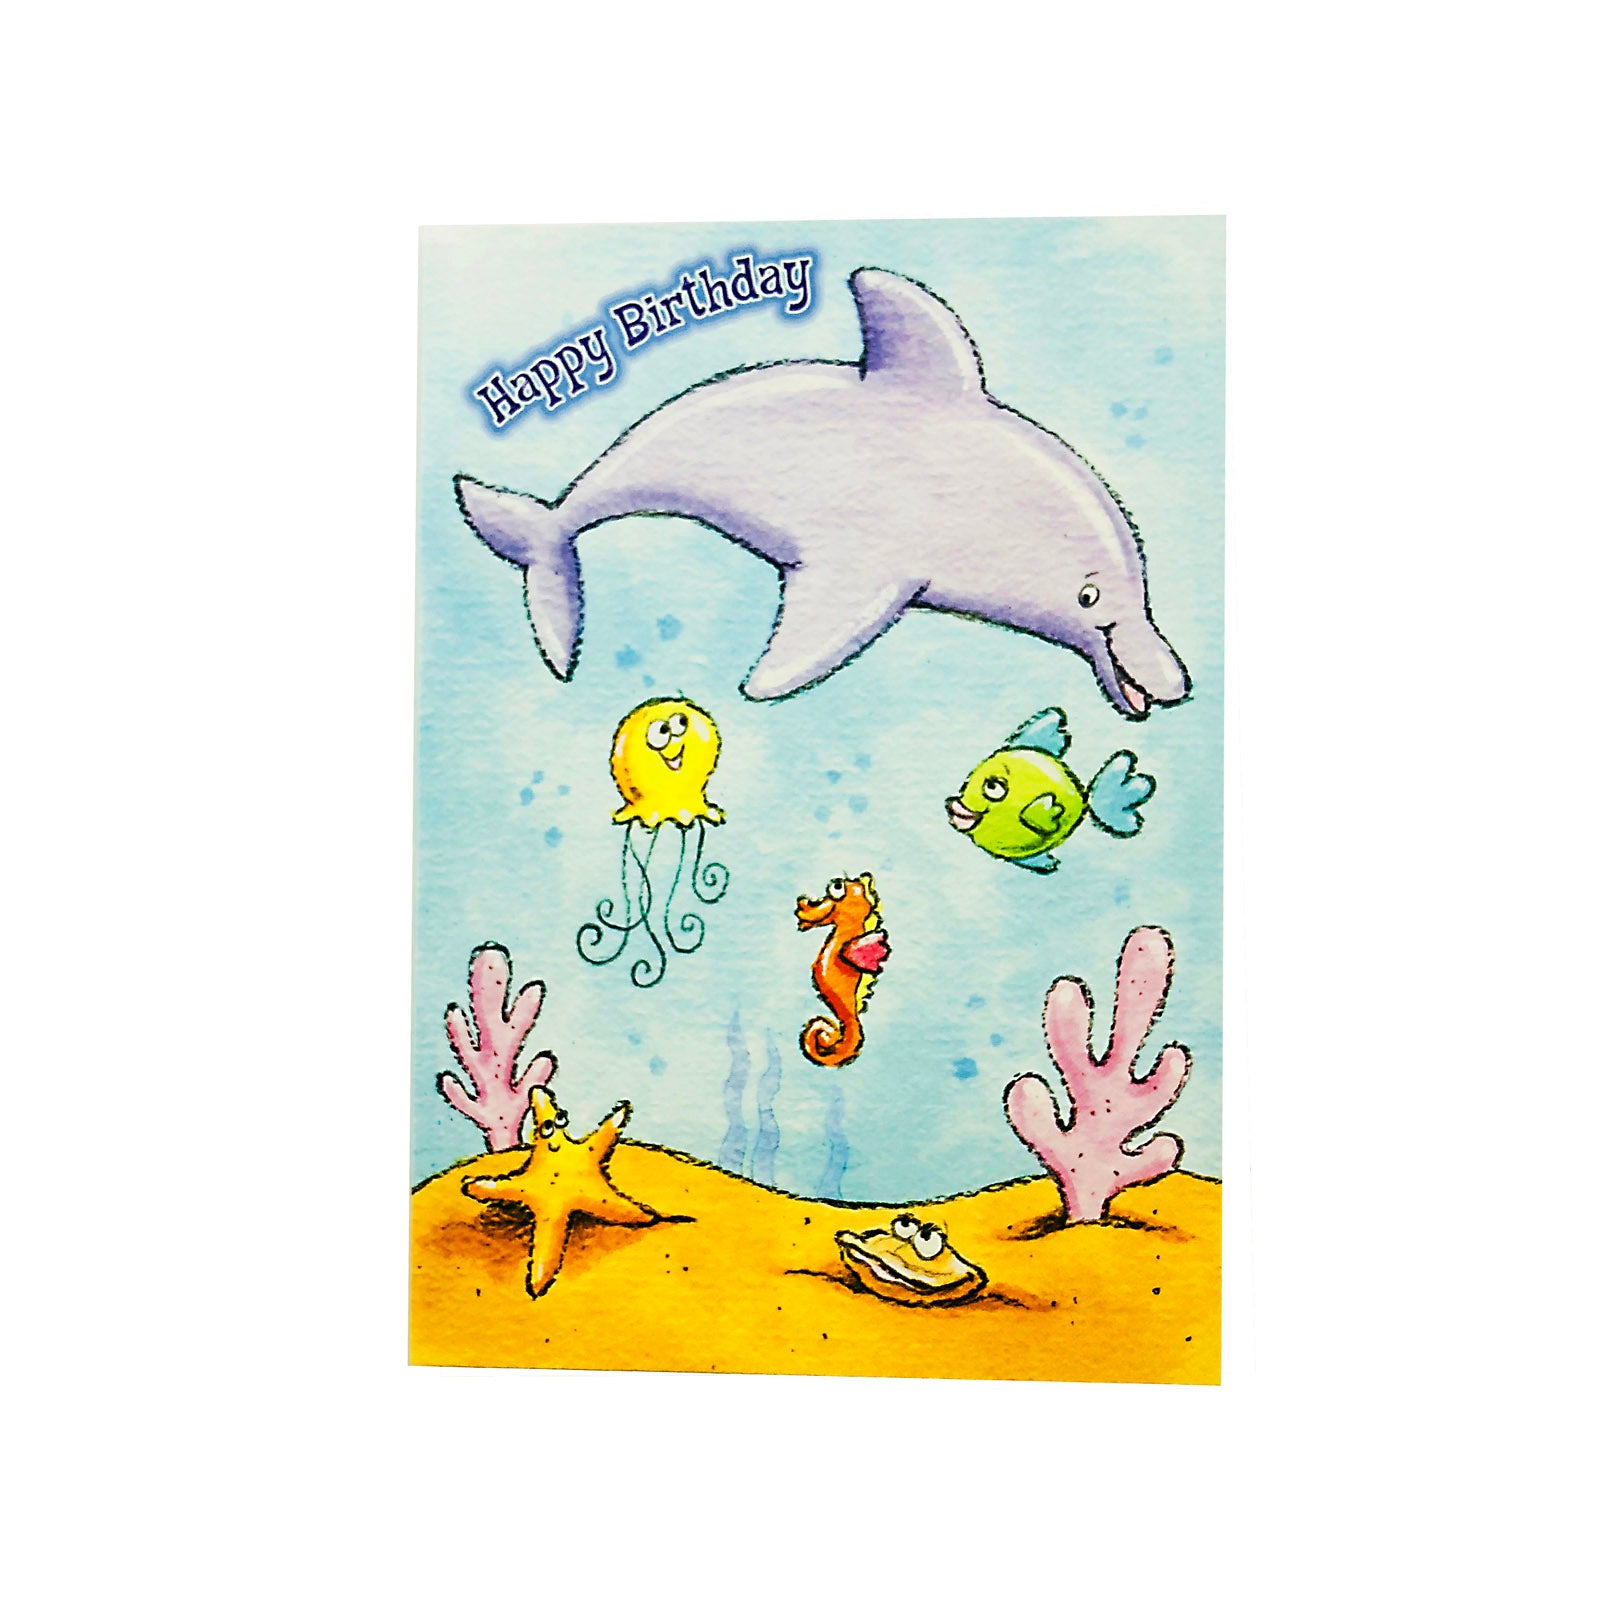 Designer Greetings Birthday Card - Happy Birthday - Dolphin